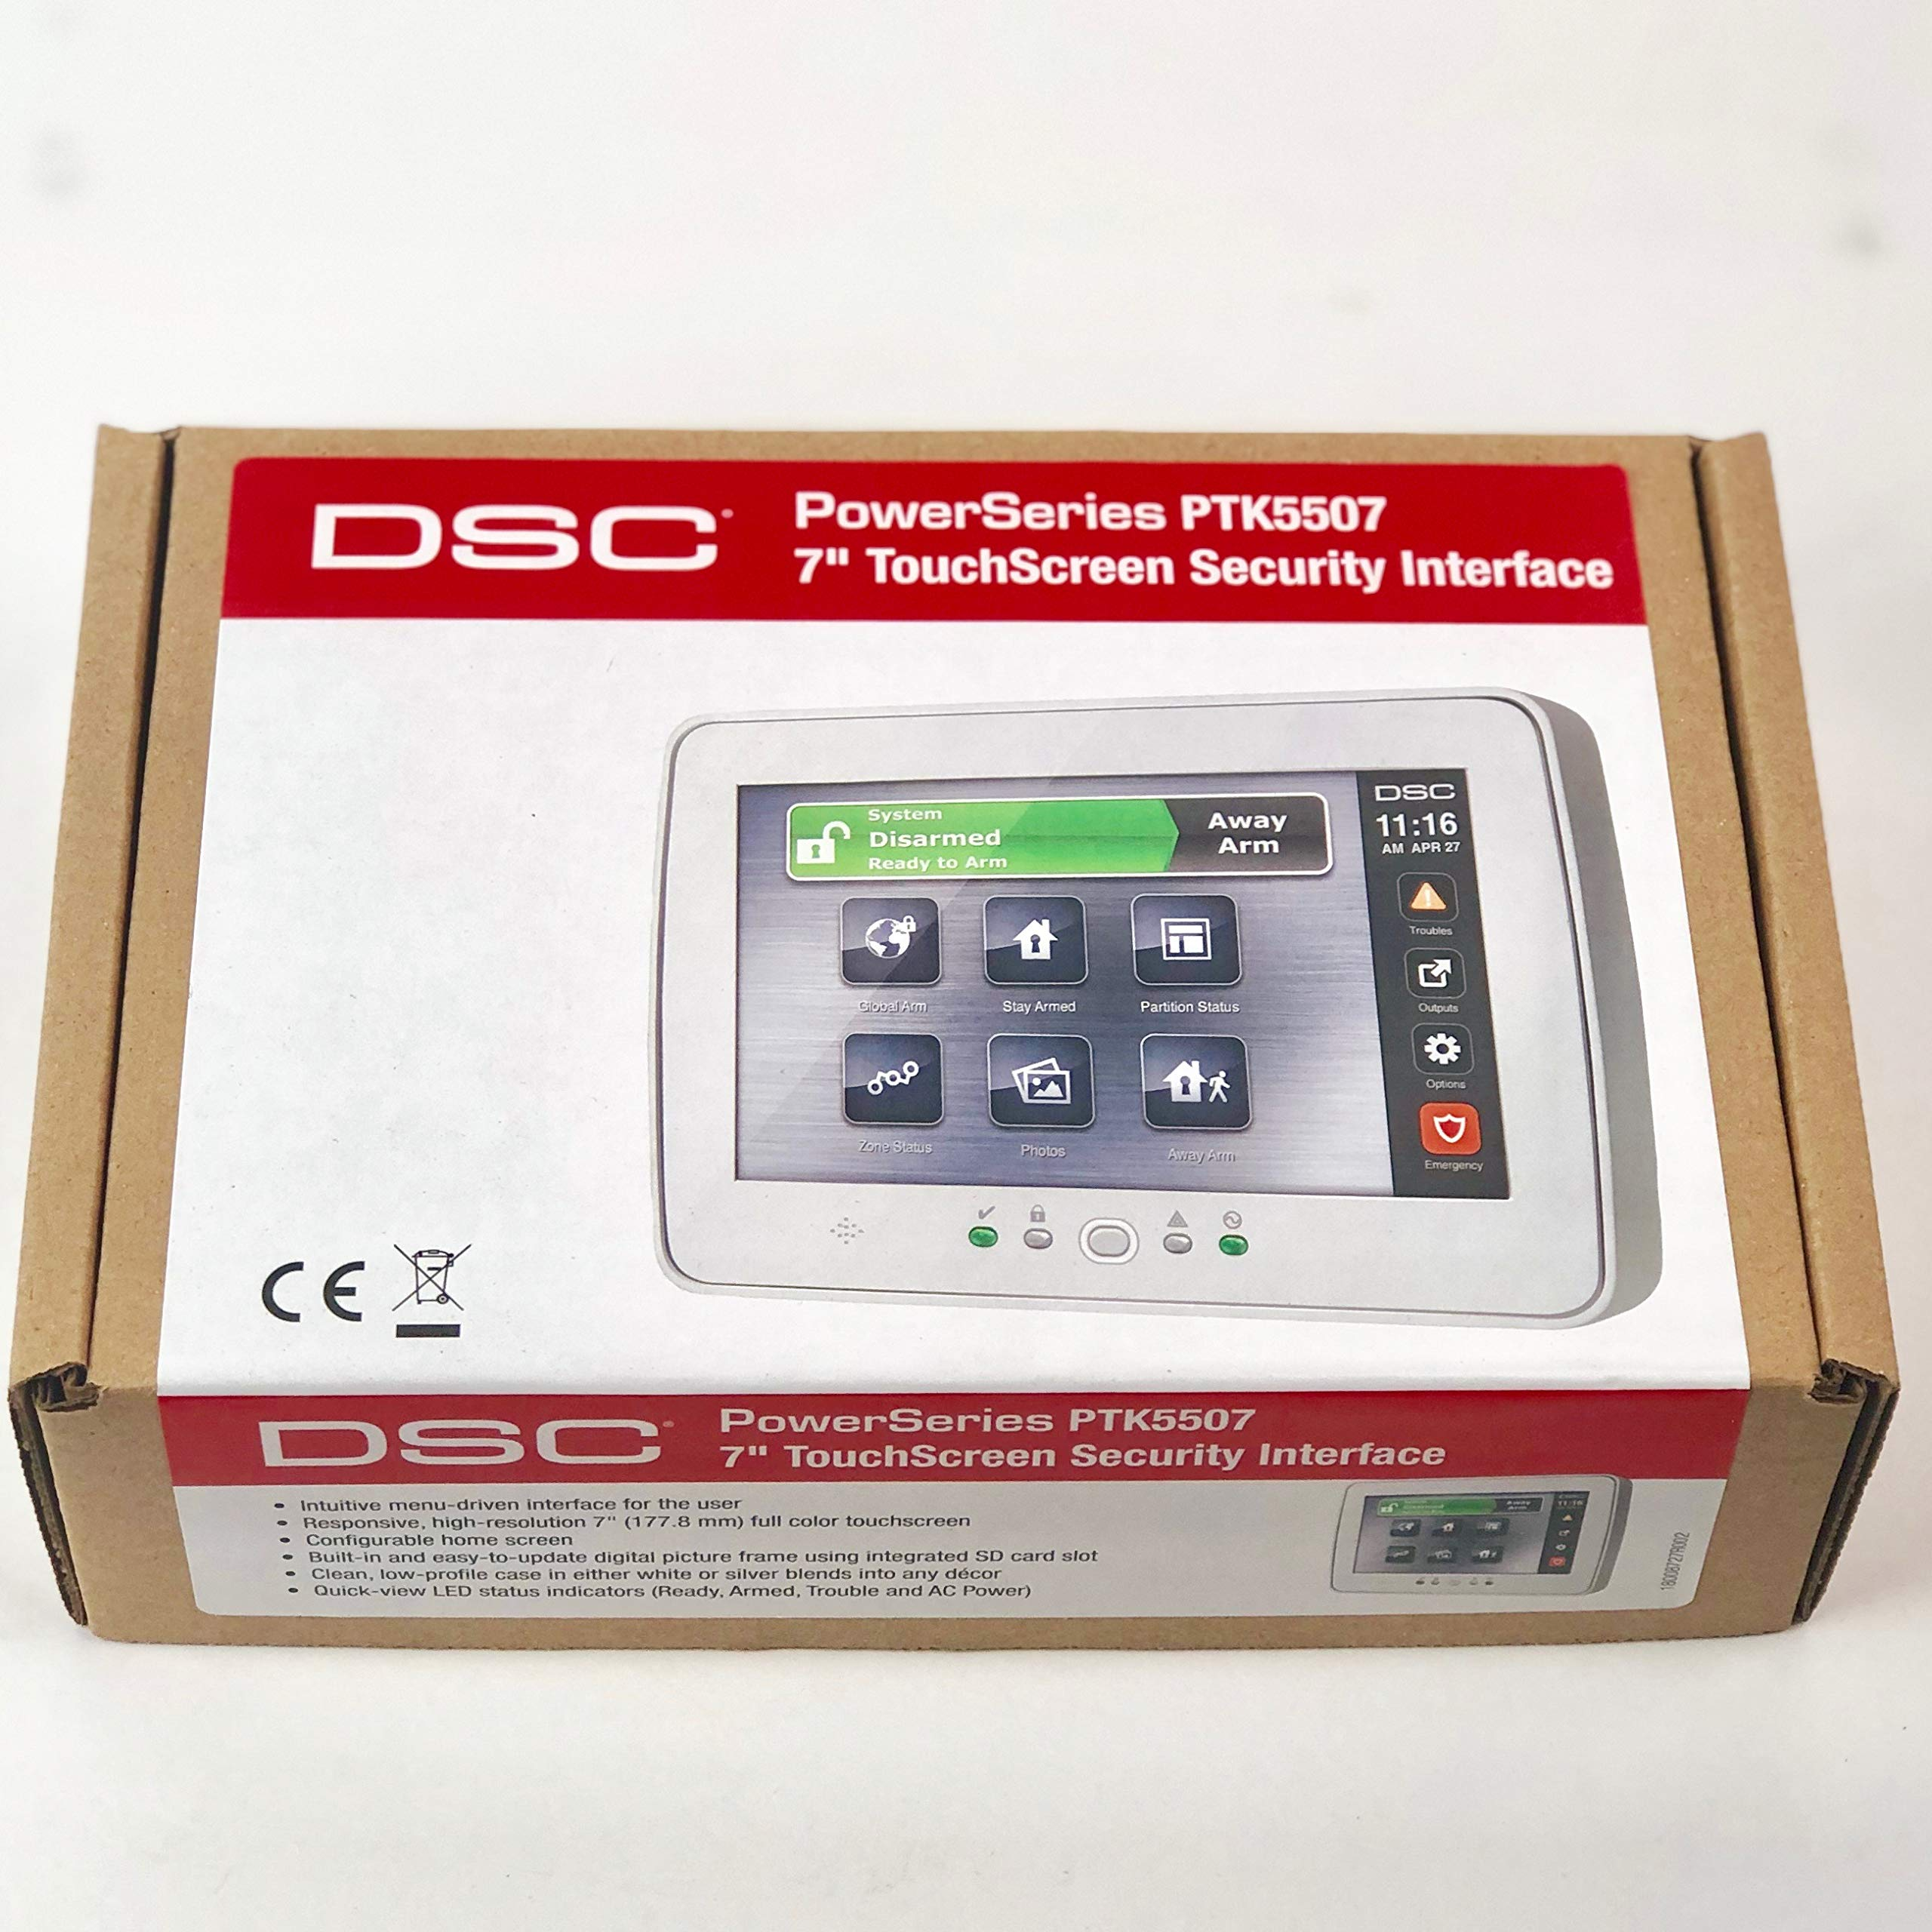 DSC PTK5507 PowerSeries TouchScreen Security Interface, 7 Inch display by DSC